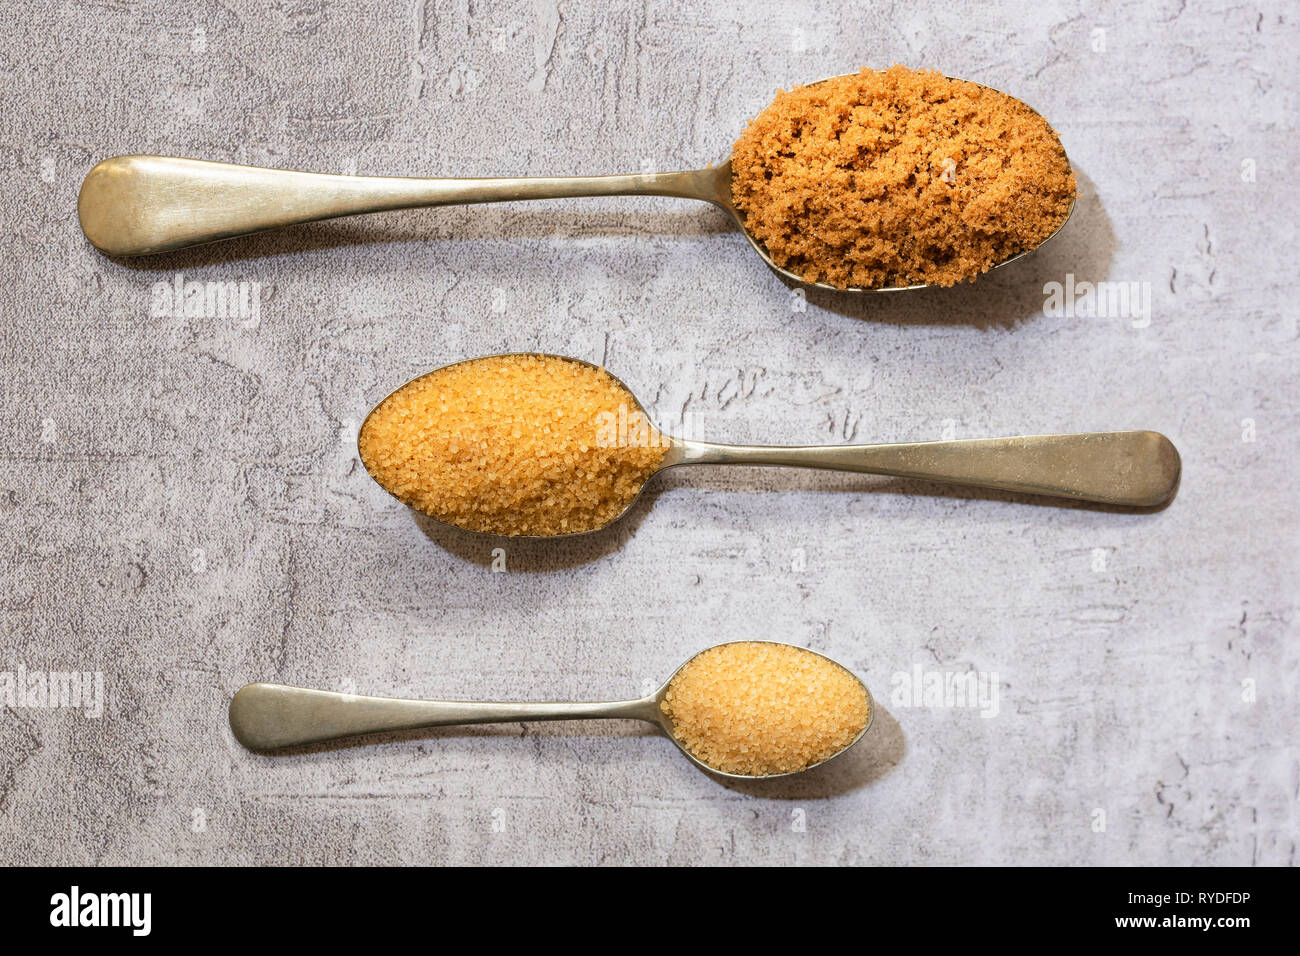 Spoonfuls of demerara, raw and brown sugar. - Stock Image